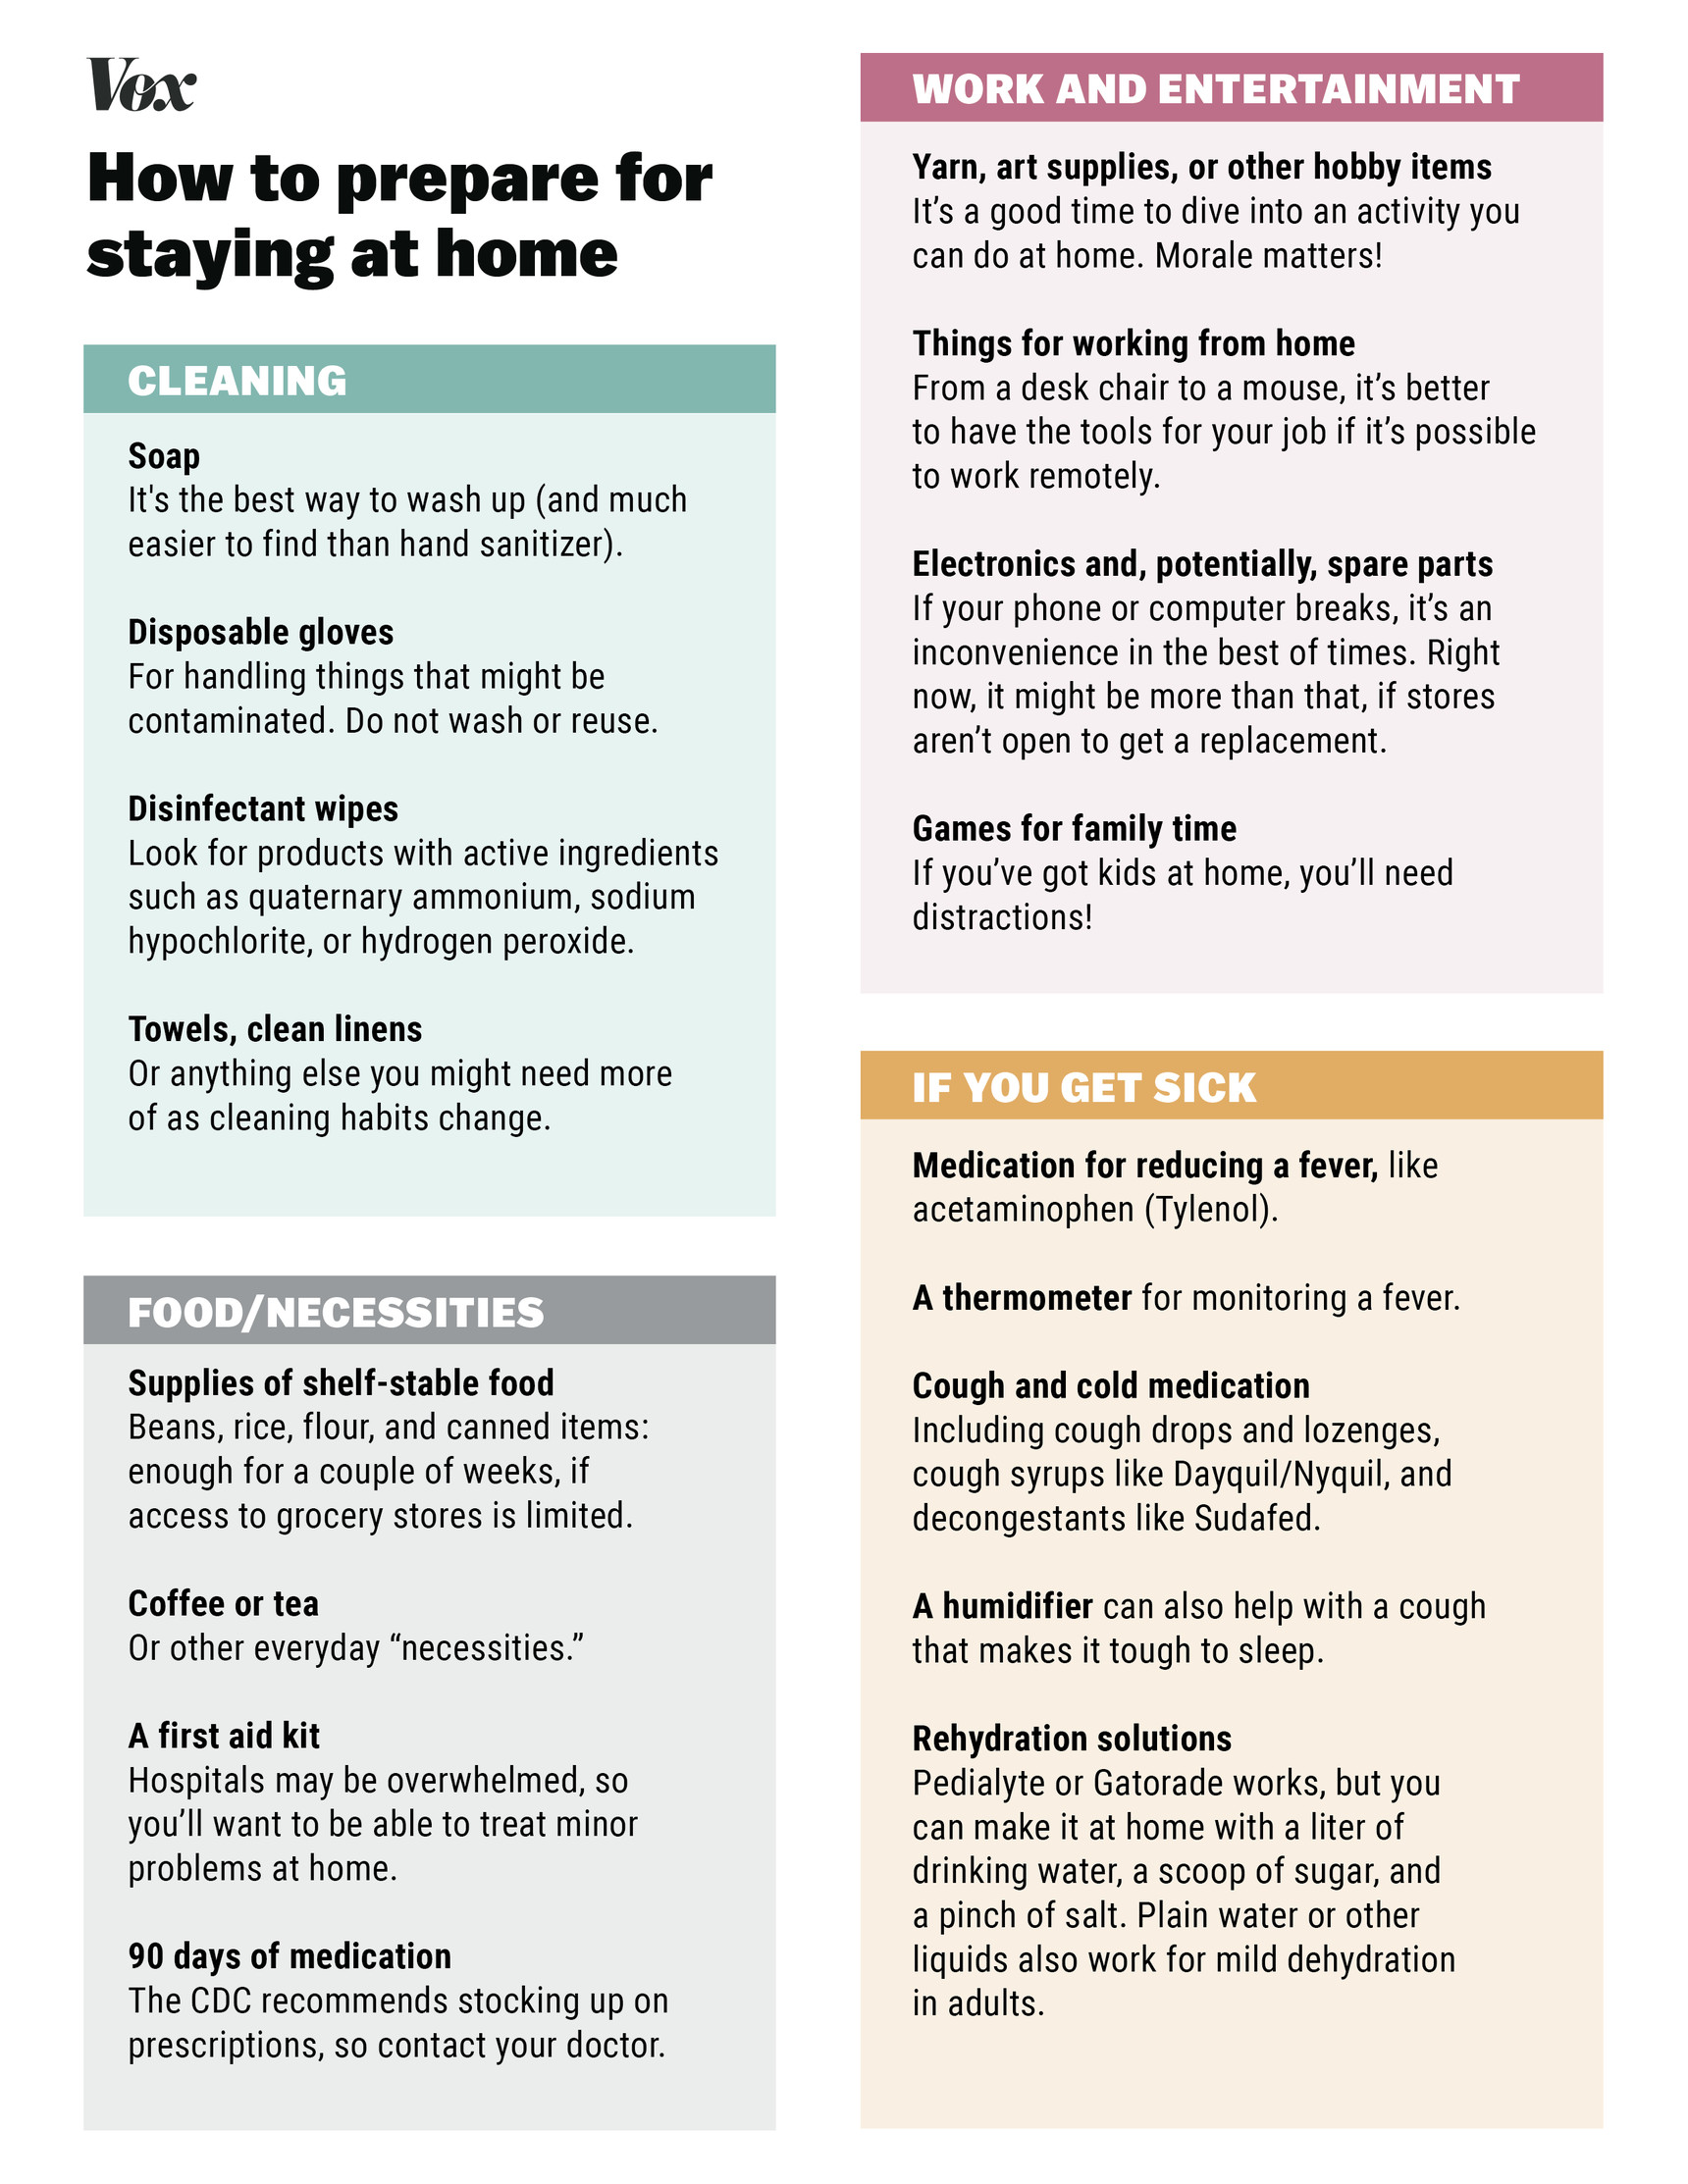 How to prepare for staying at home